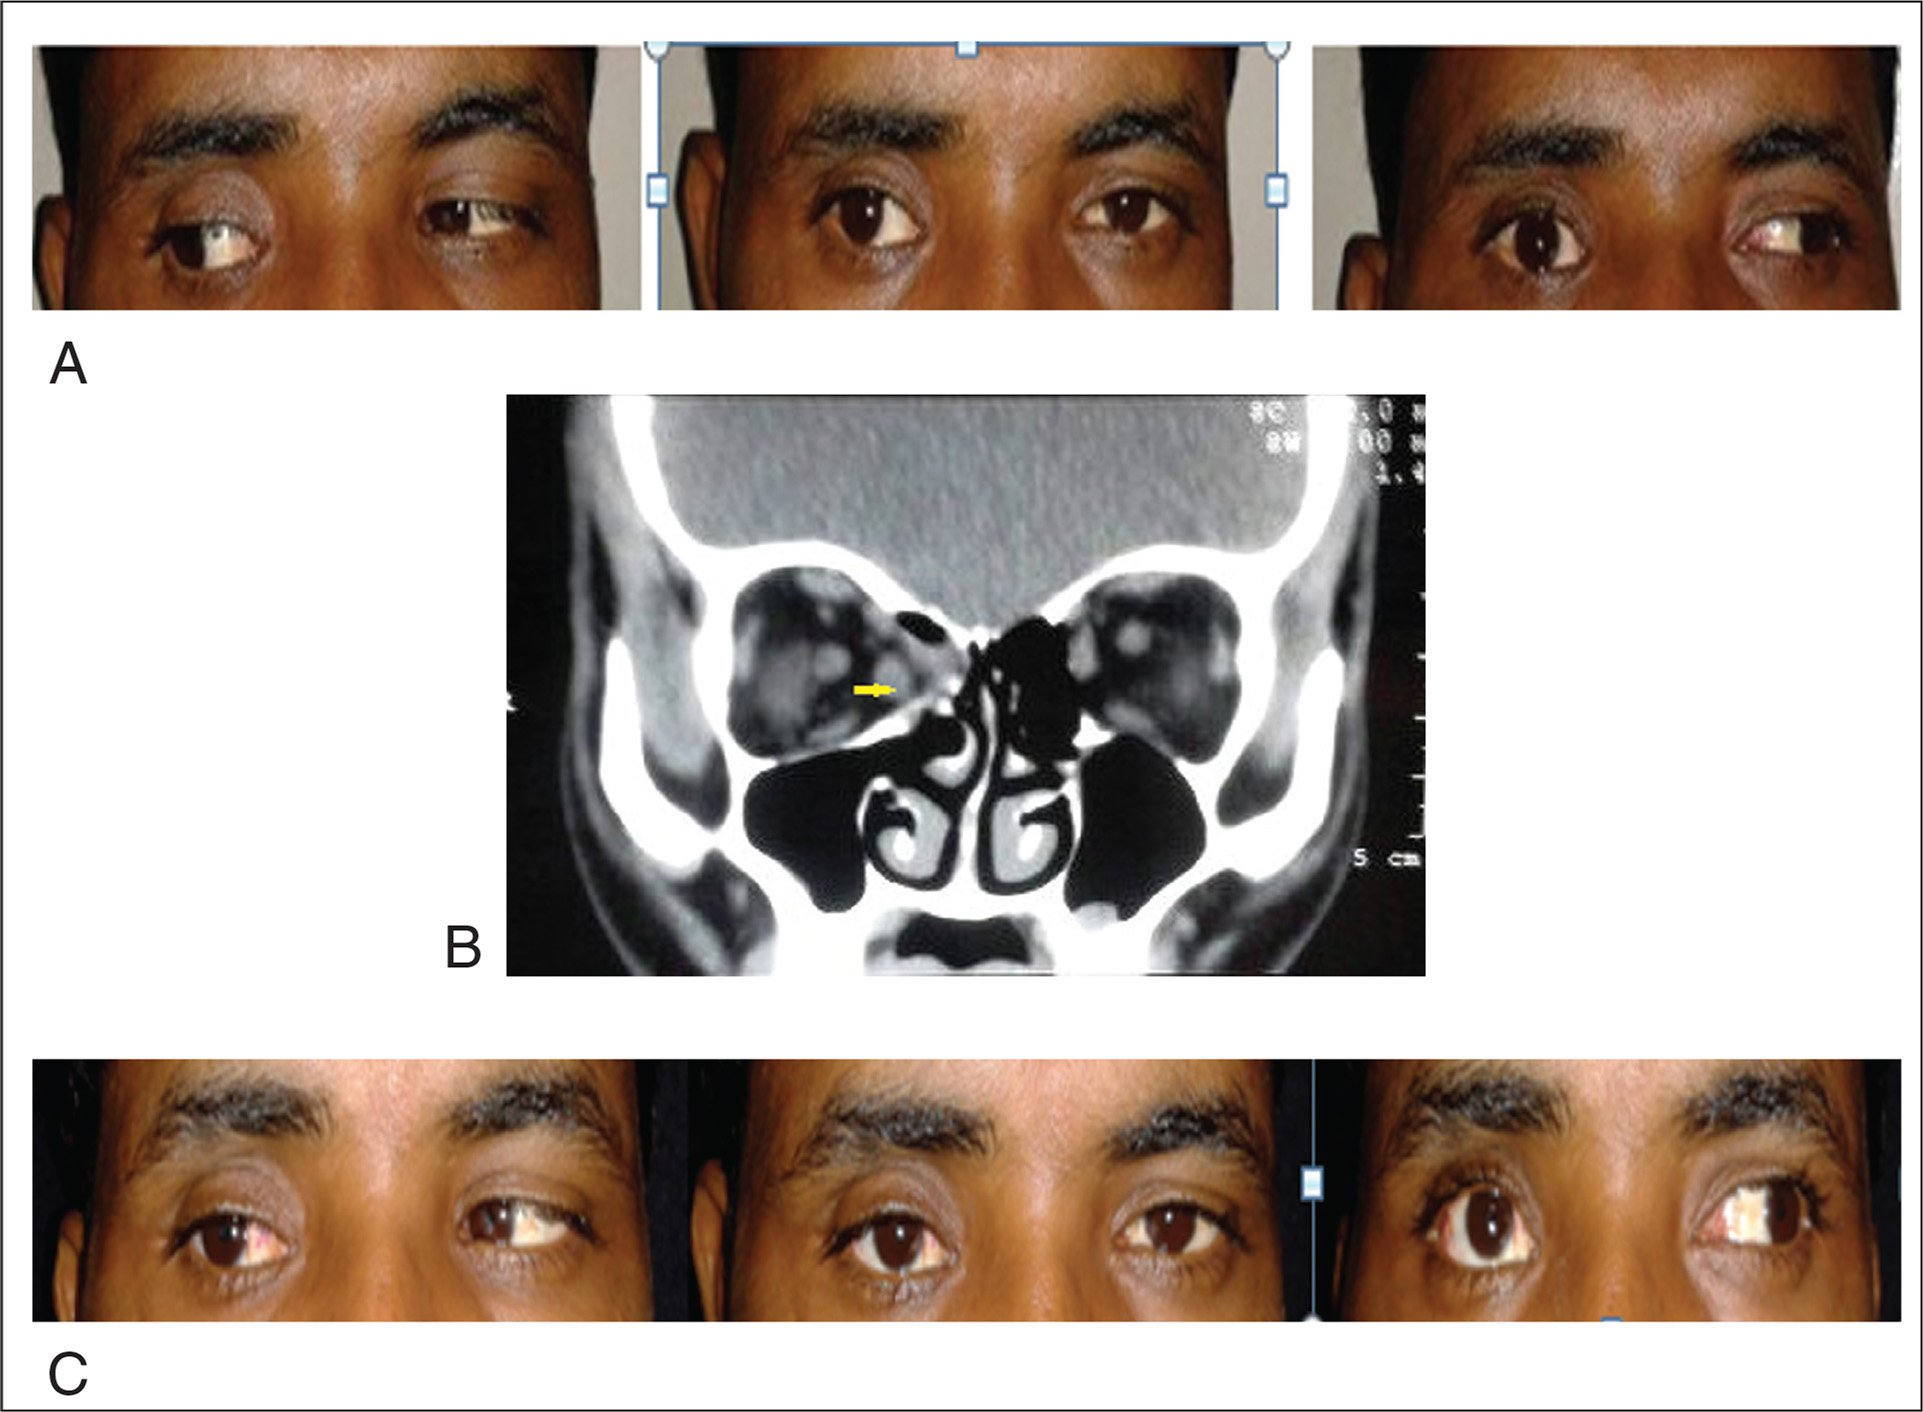 (A) Preoperative clinical photographs of a patient (case 3) with exotropia of the right eye. (B) Orbital non-contrast computed tomography scan showing thinning of medial rectus muscle with bony defect in the right orbit (arrow). (C) Orthotropia in primary gaze and improvement in adduction postoperatively.